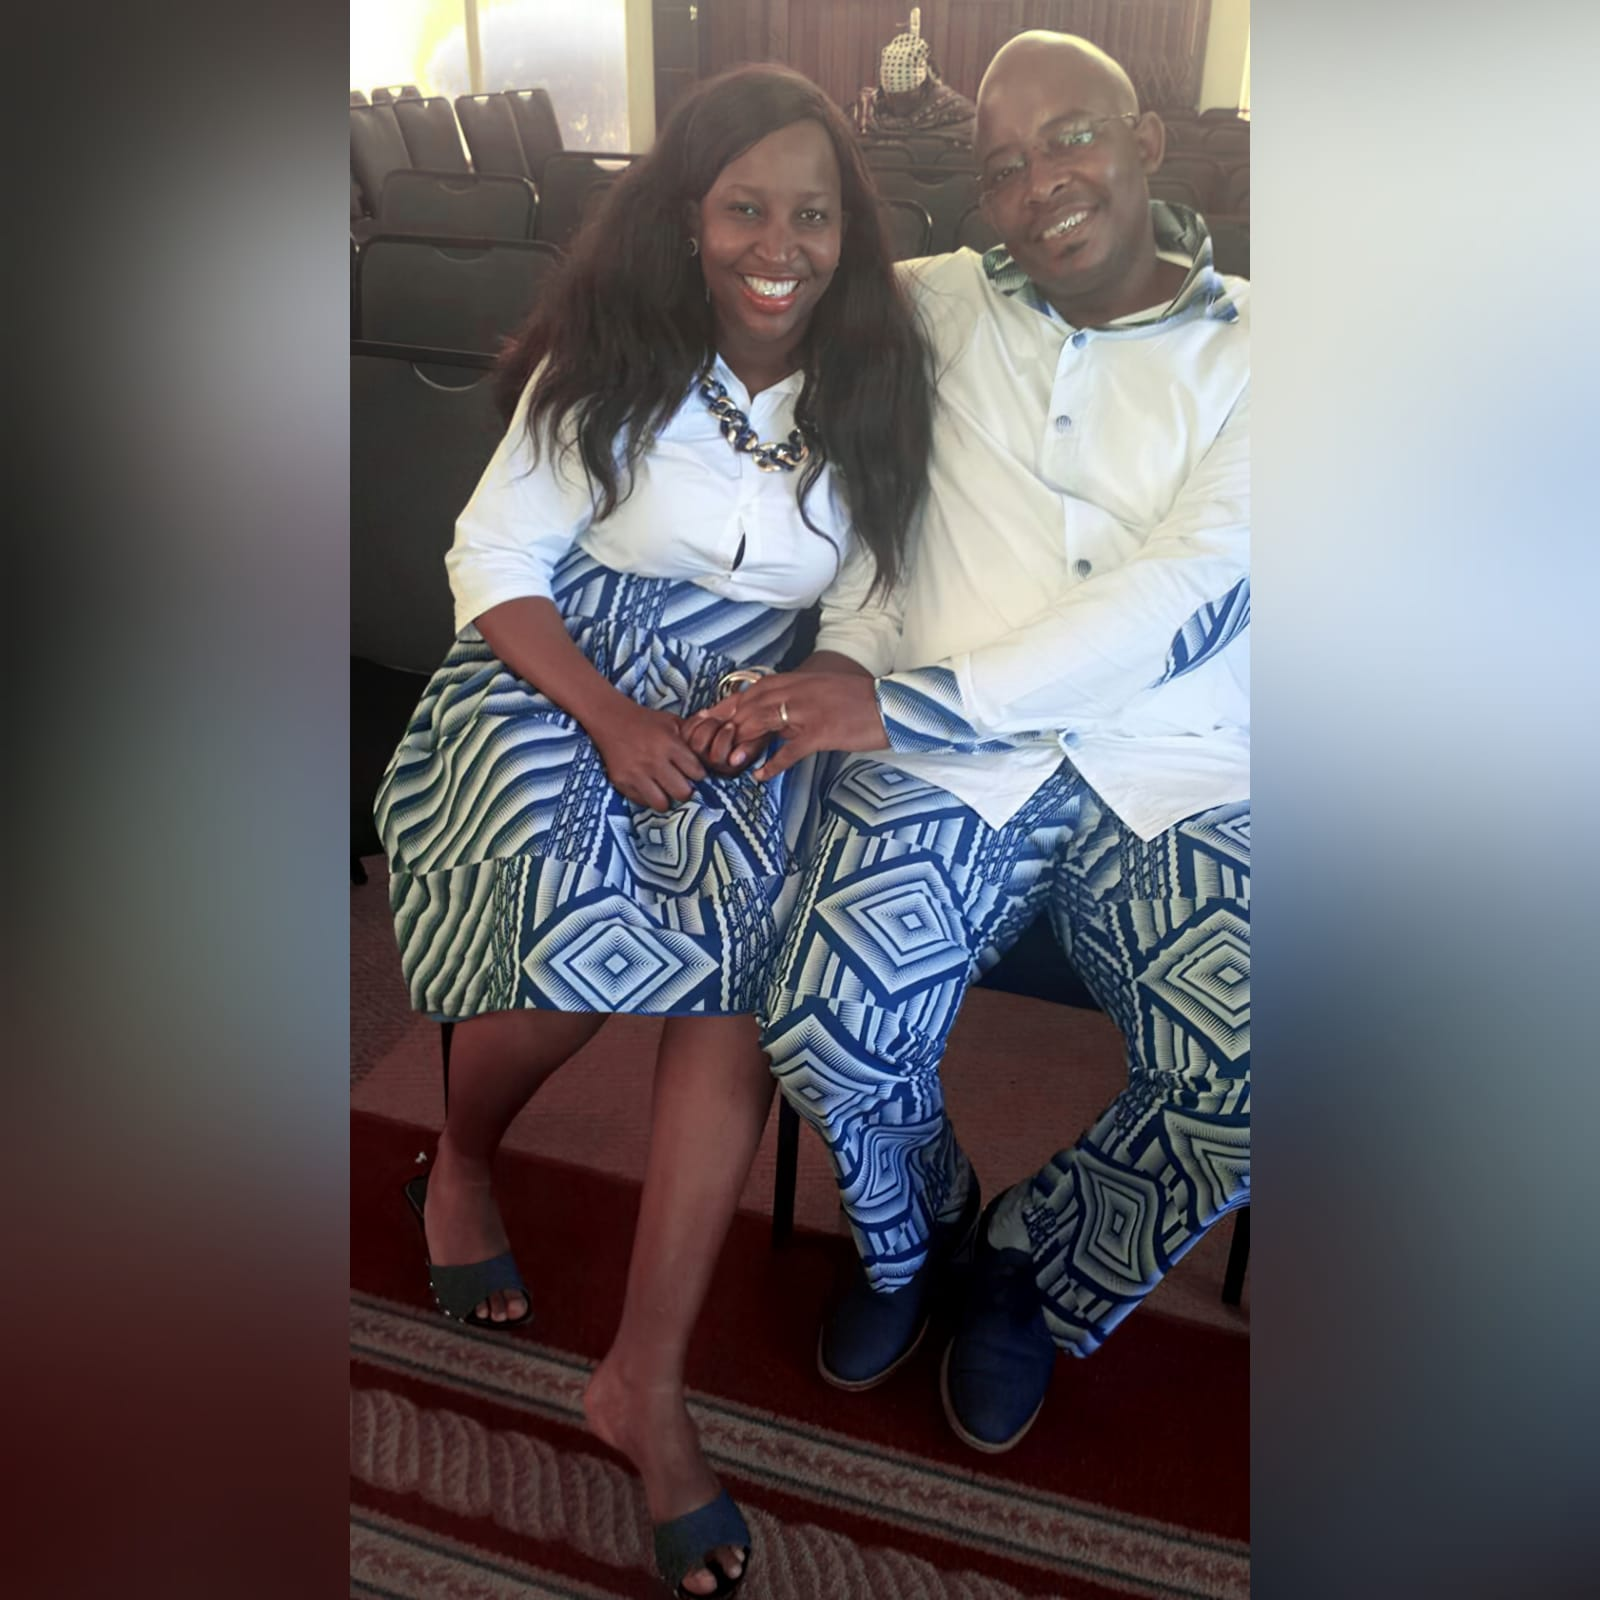 Matching couples traditional shweshwe wedding attire 2 lady: high waisted gathered traditional skirt with white 3/4 sleeve blouse. Gent: trousers and shirt with detailed collar, cuffs and elbow patches. Traditional wedding attire.